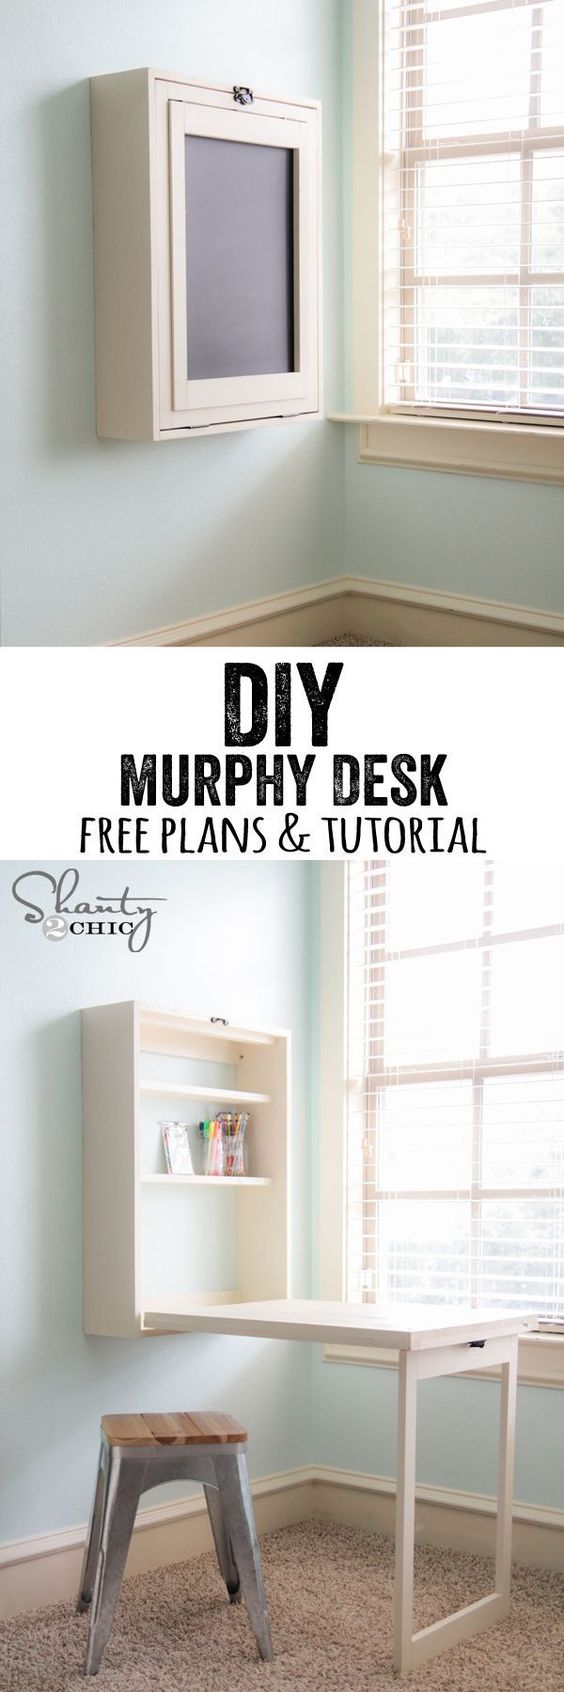 Free DIY Furniture Project Plan from Shanty2Chic: Learn How to Build a Murphy Desk with Storage: